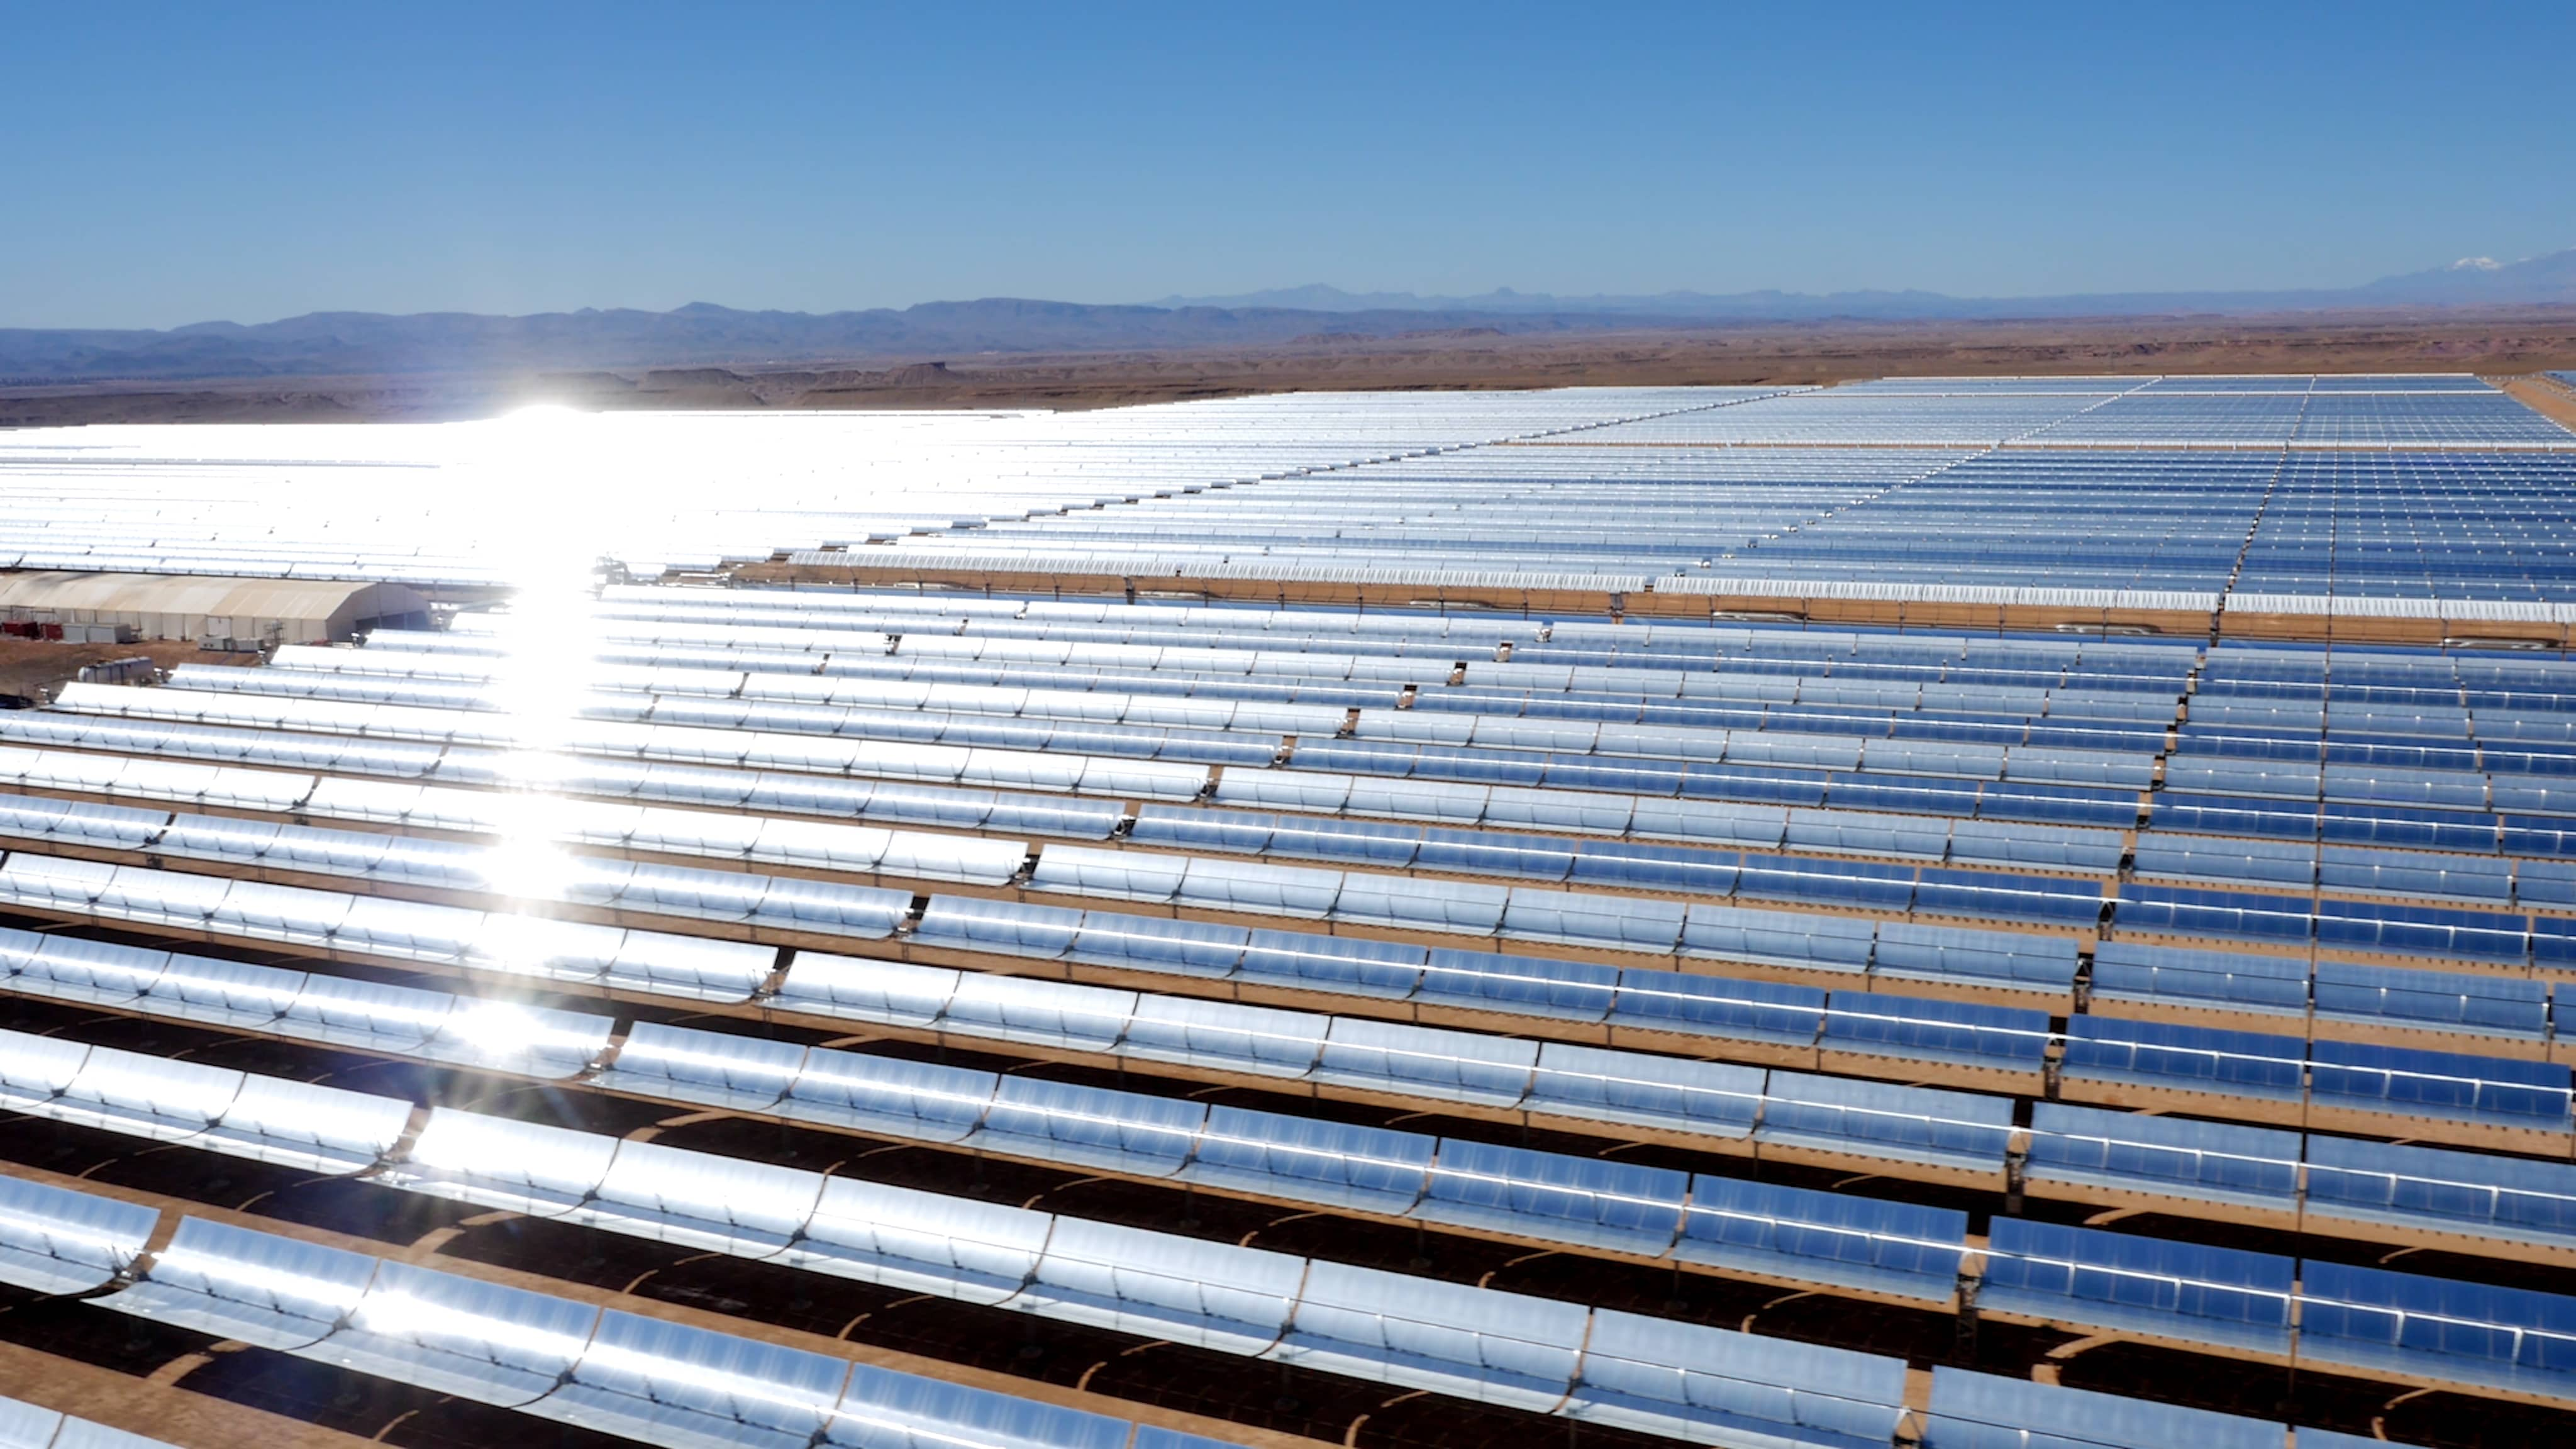 Marocco Morocco Inaugurates First Phase Of Huge Solar Project